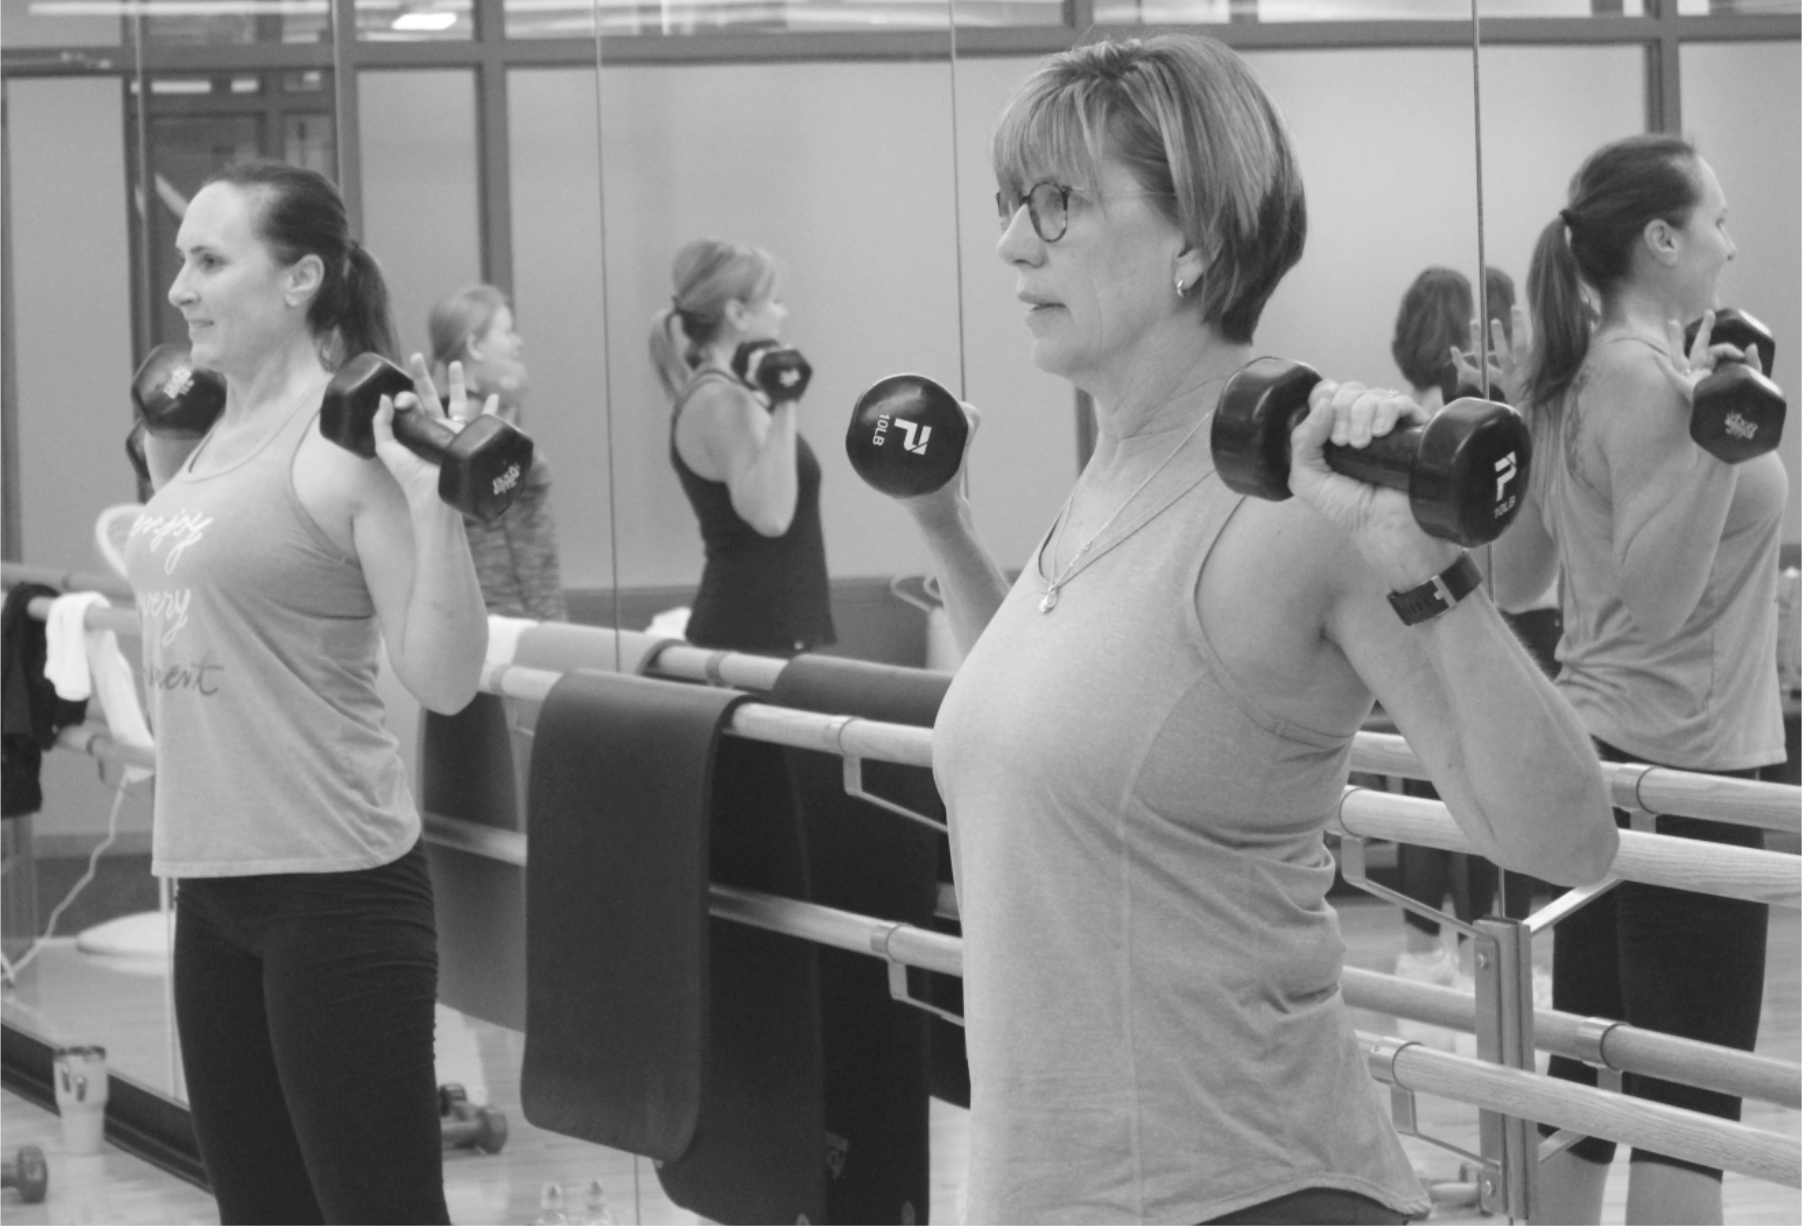 Two Women Holding Dumbbells